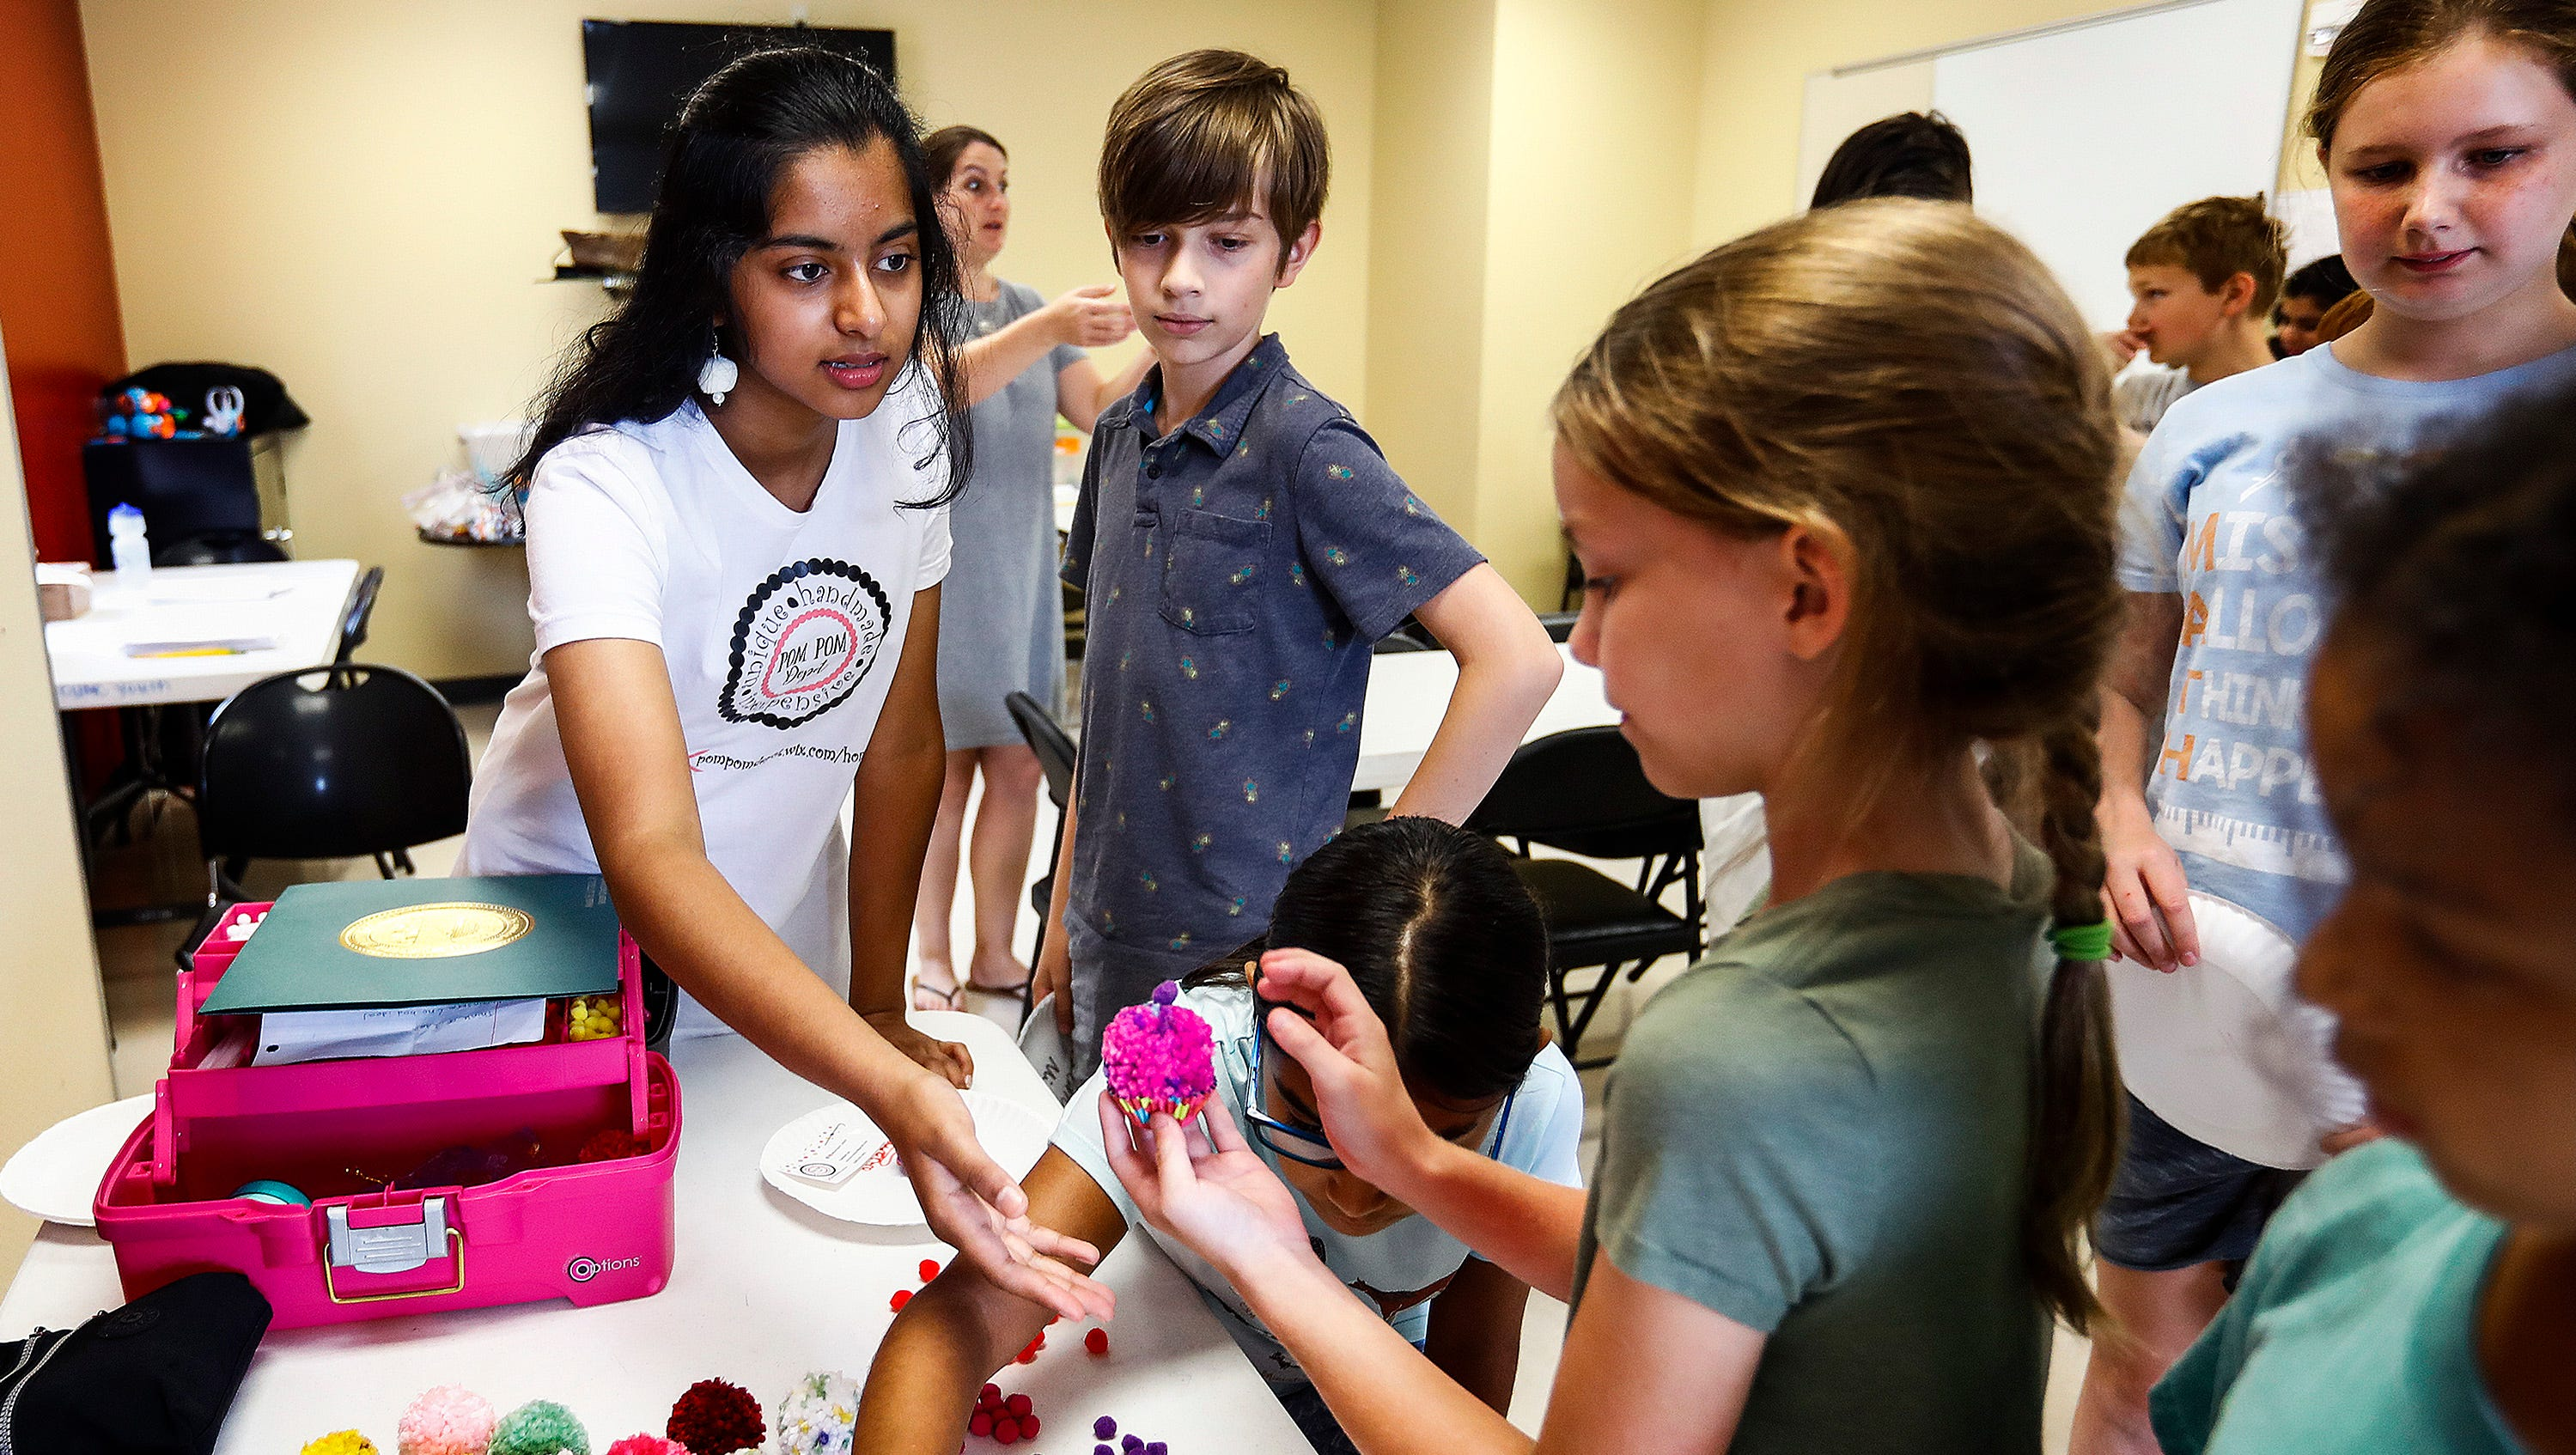 commercialappeal.com - Collierville sisters shine in engineering, entrepreneurship